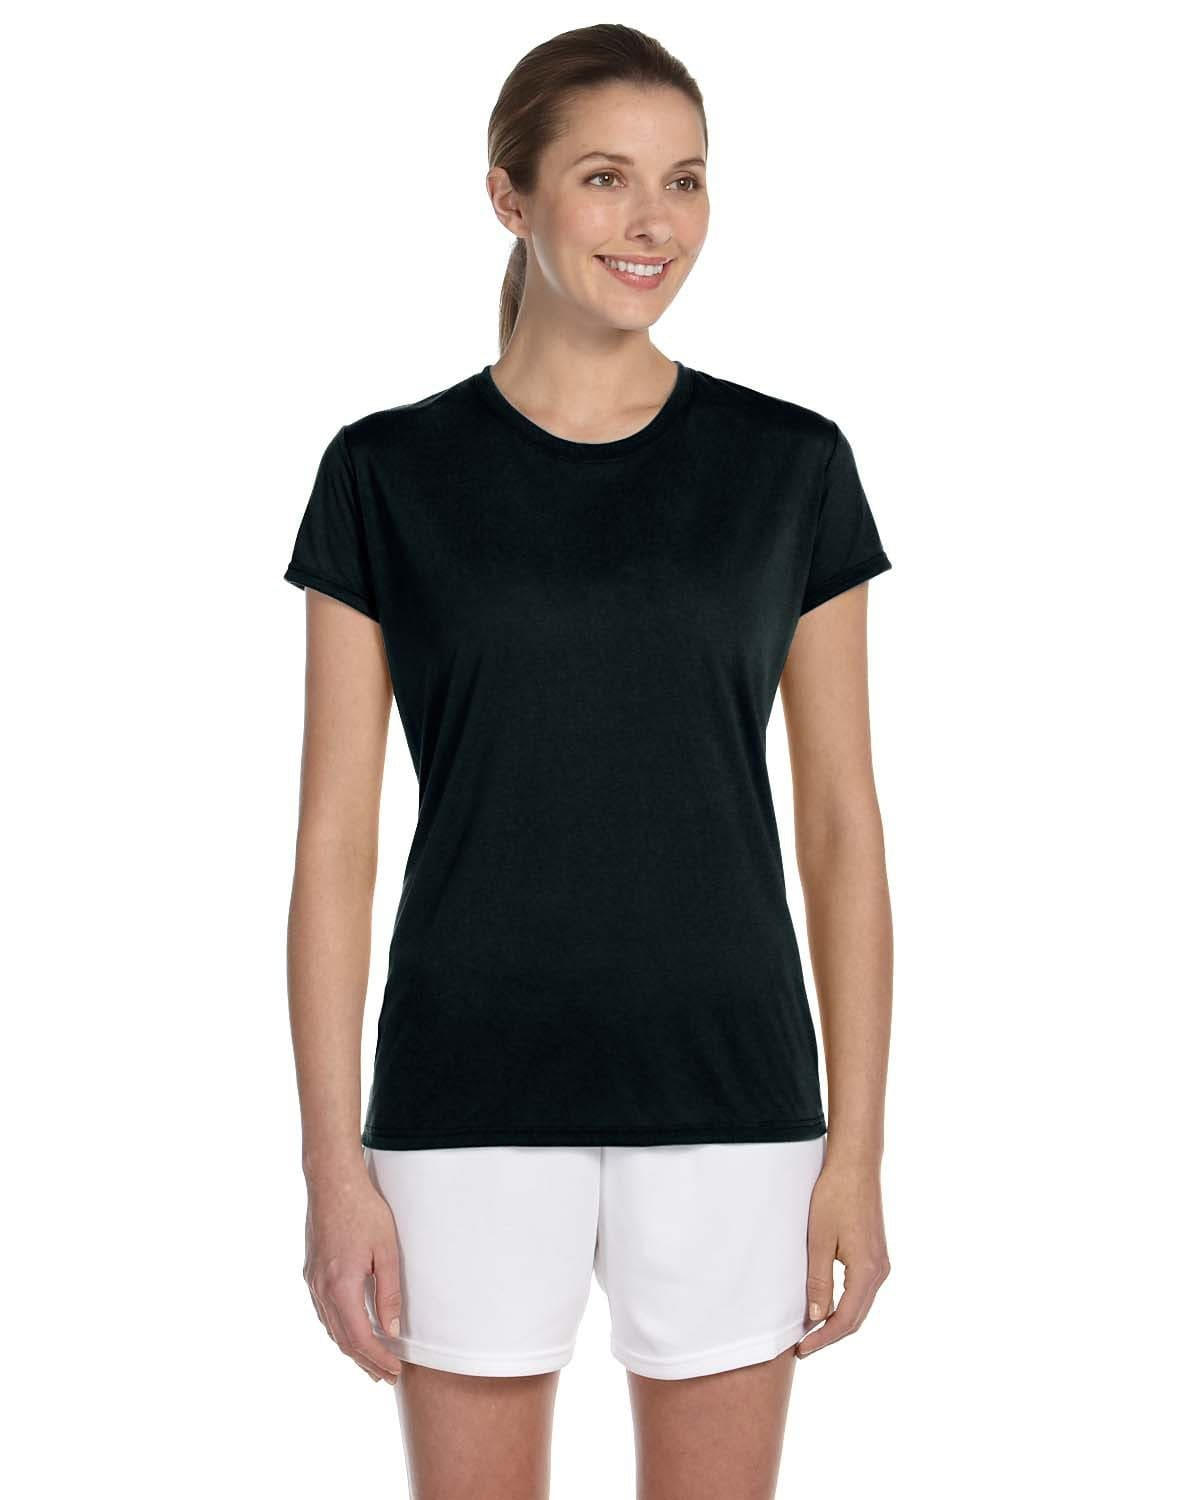 g420l-ladies-performance-ladies-5-oz-t-shirt-xsmall-large-XSmall-BLACK-Oasispromos